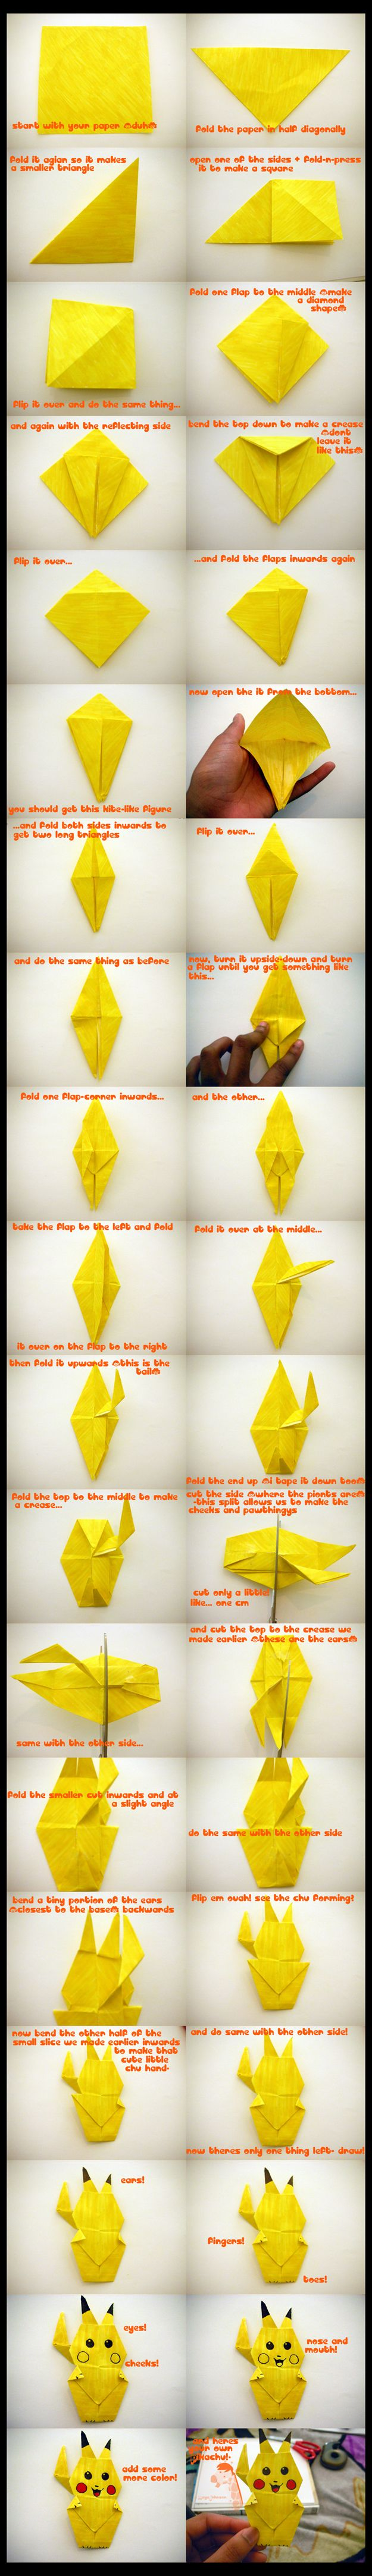 How To Make An Origami Pikachu. These instructions are terrible but I got it done! So cute :)